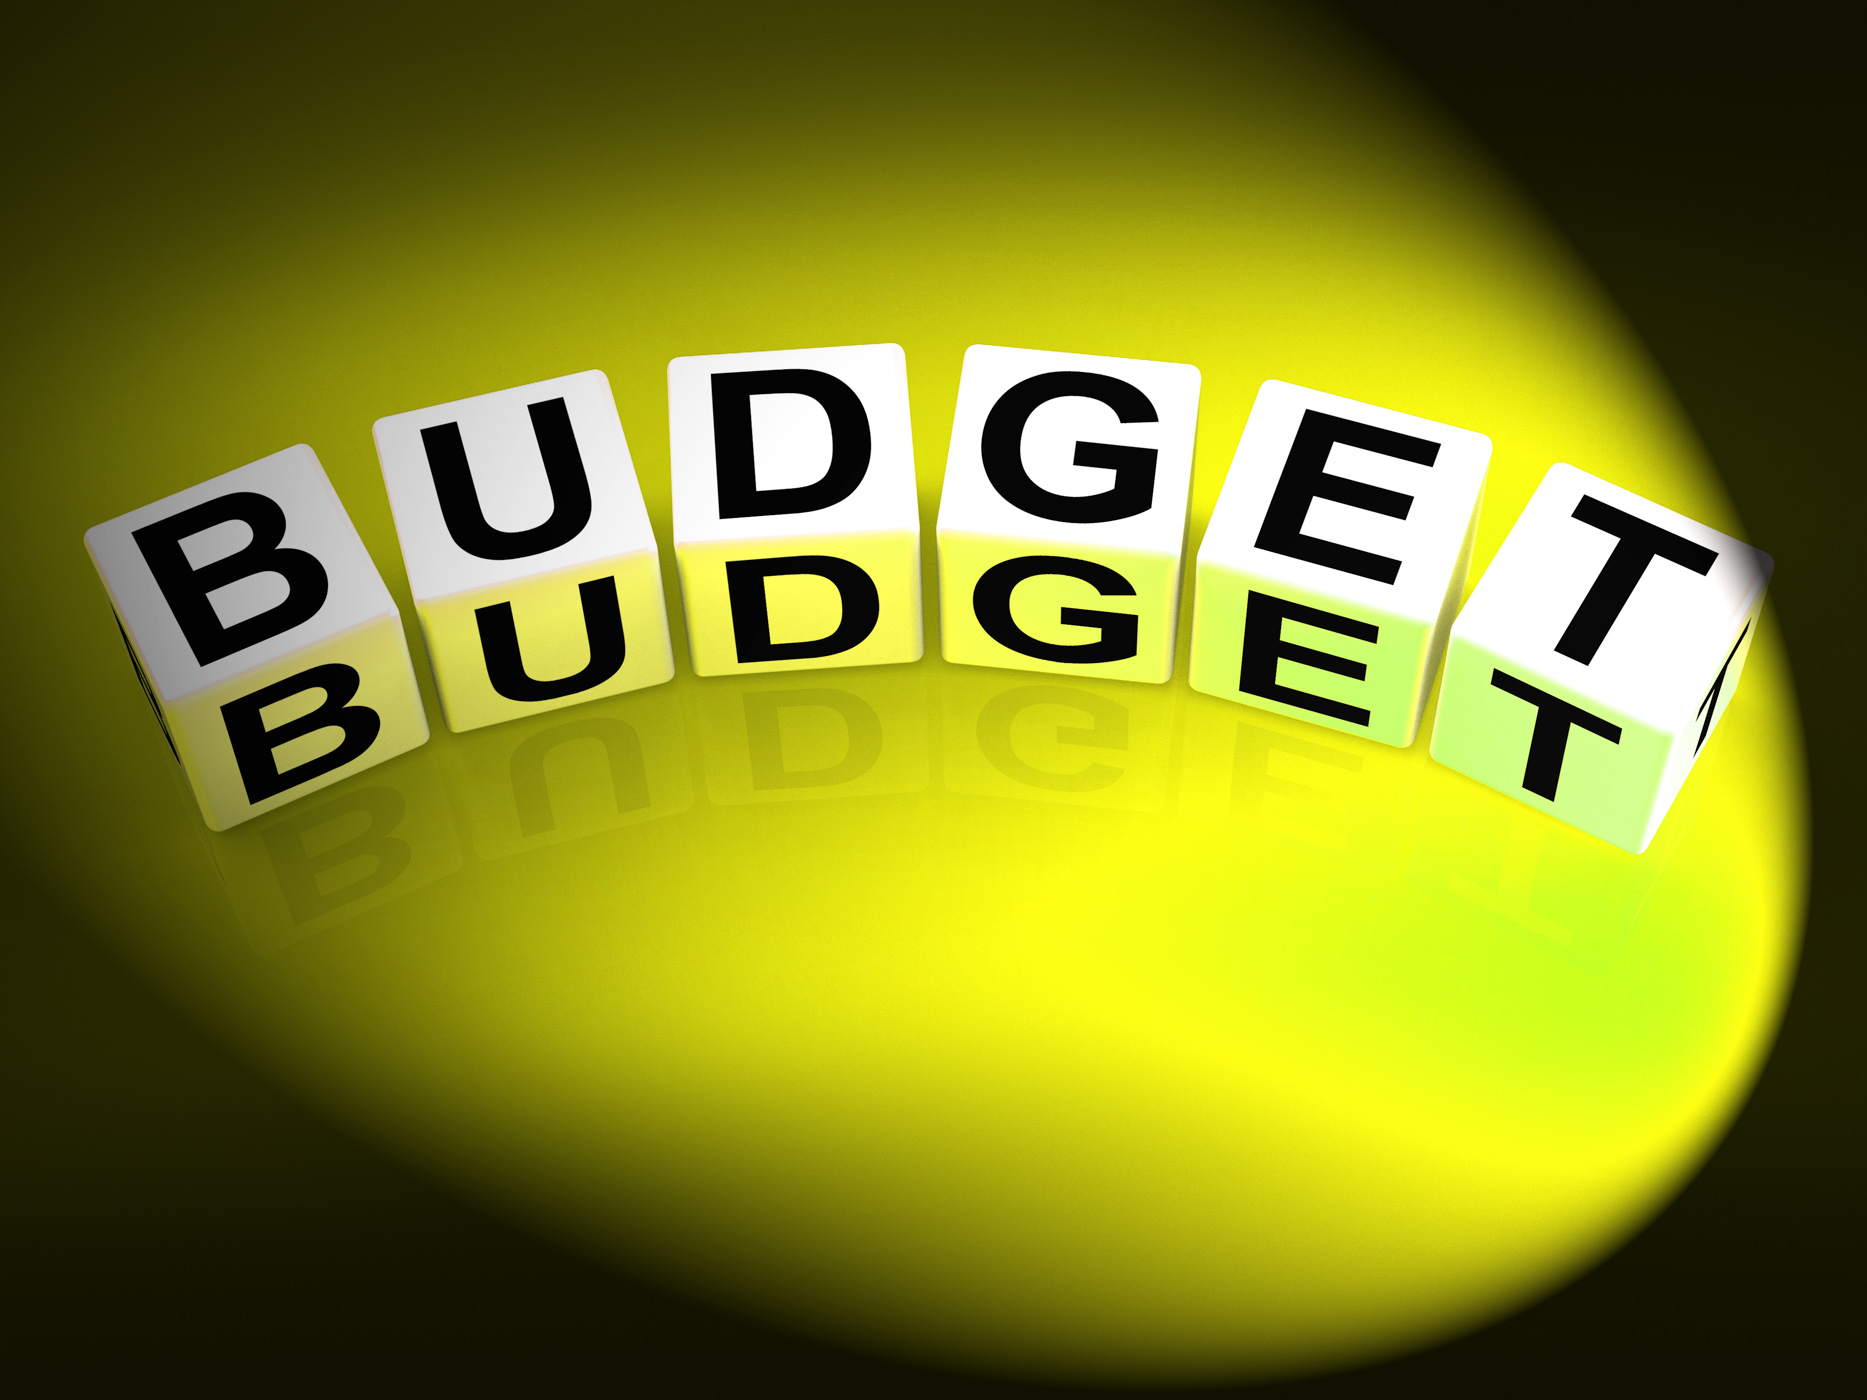 Budget Dice Show Financial Planning and Accounting, Accounting, Budget, Costs, Cuts, HQ Photo